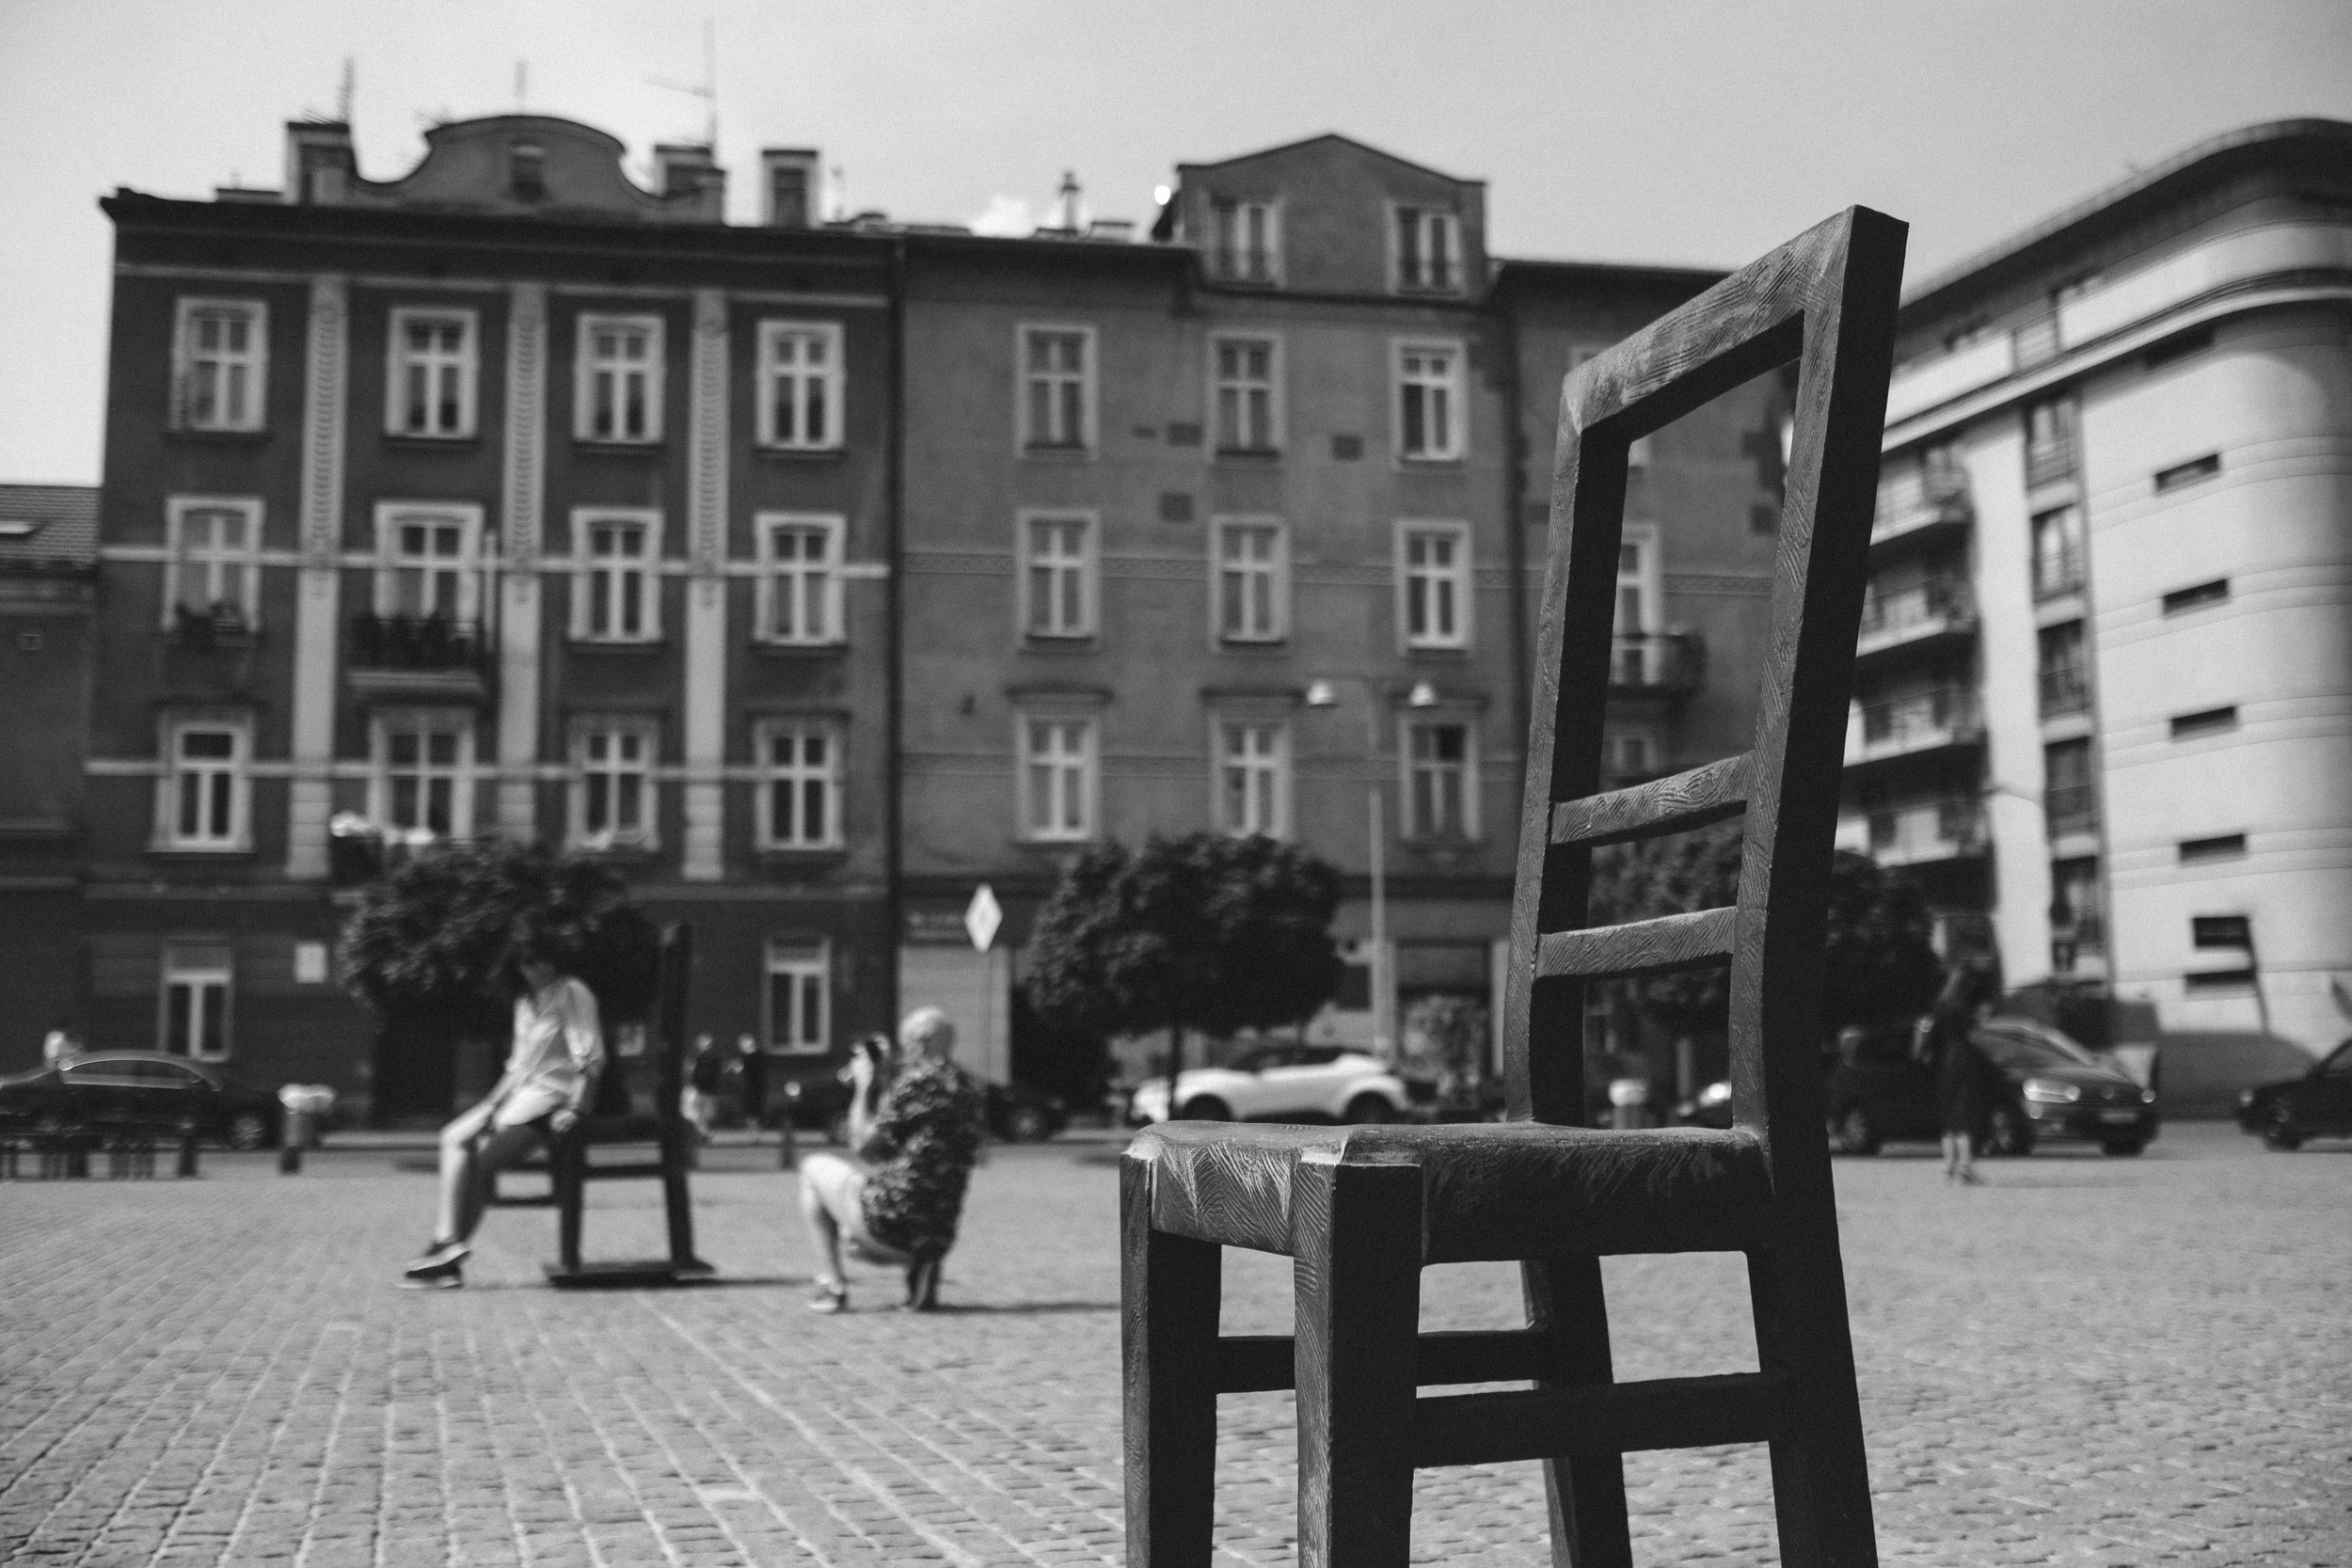 A large chair places in a square in the Jewish Quarter of Kazimierz in Krakow Poland